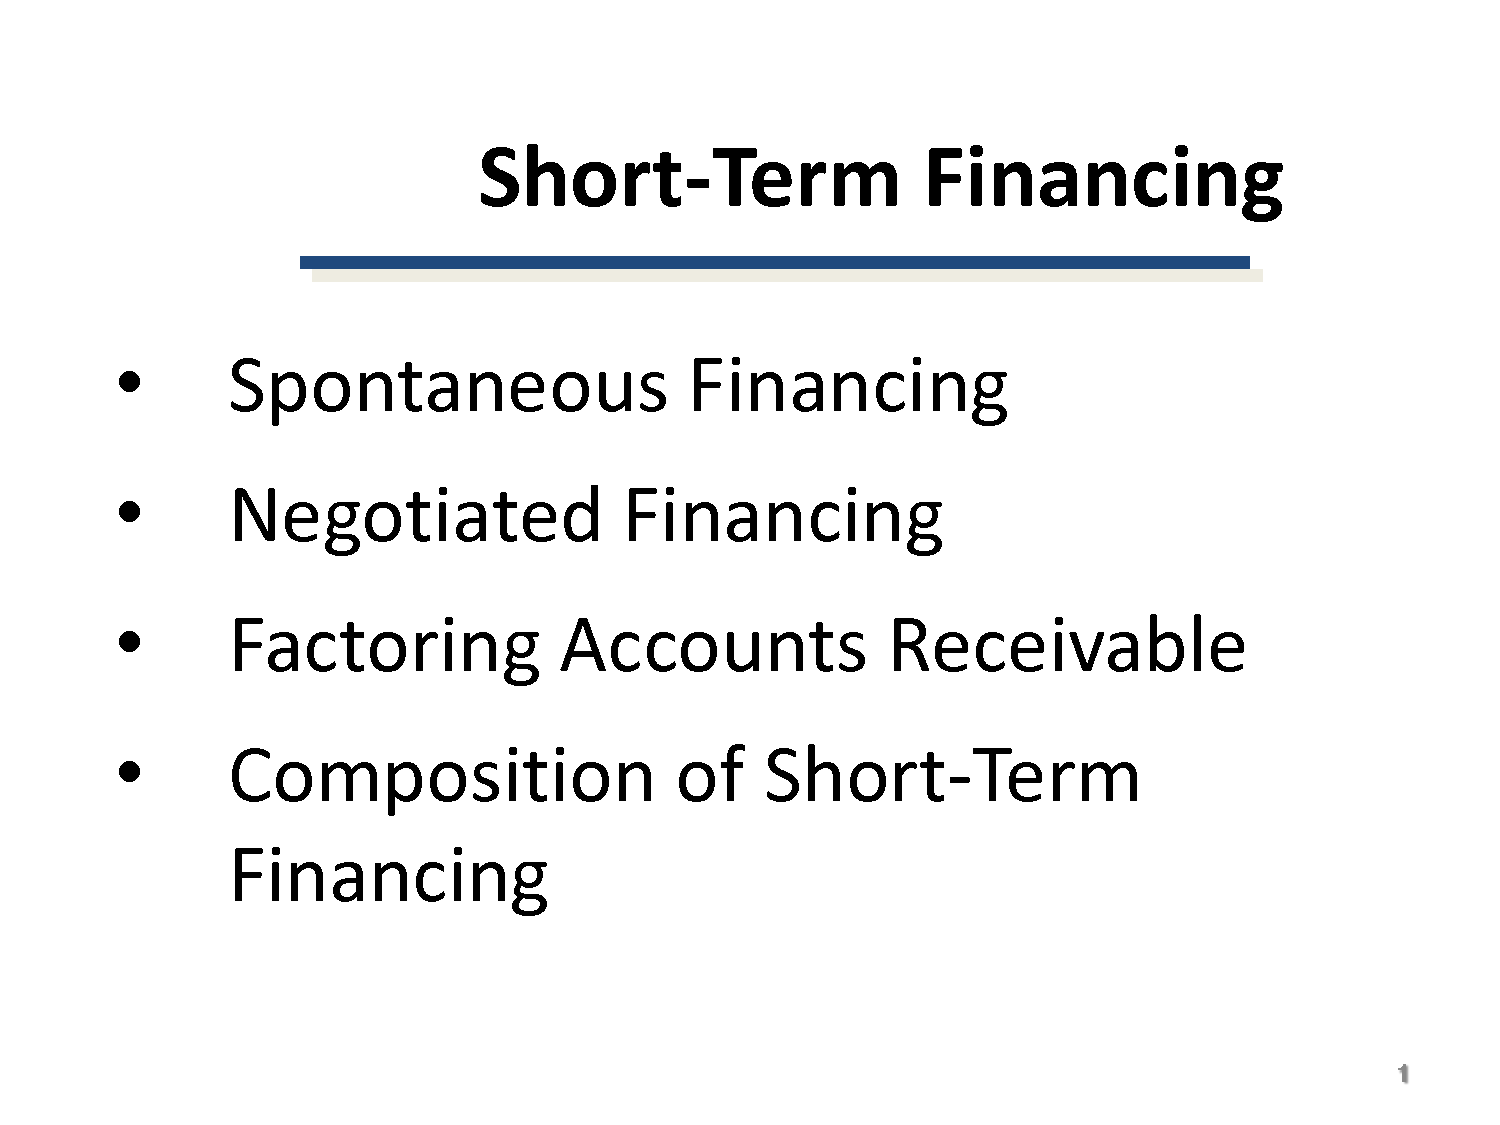 long term sources of finance essays on education